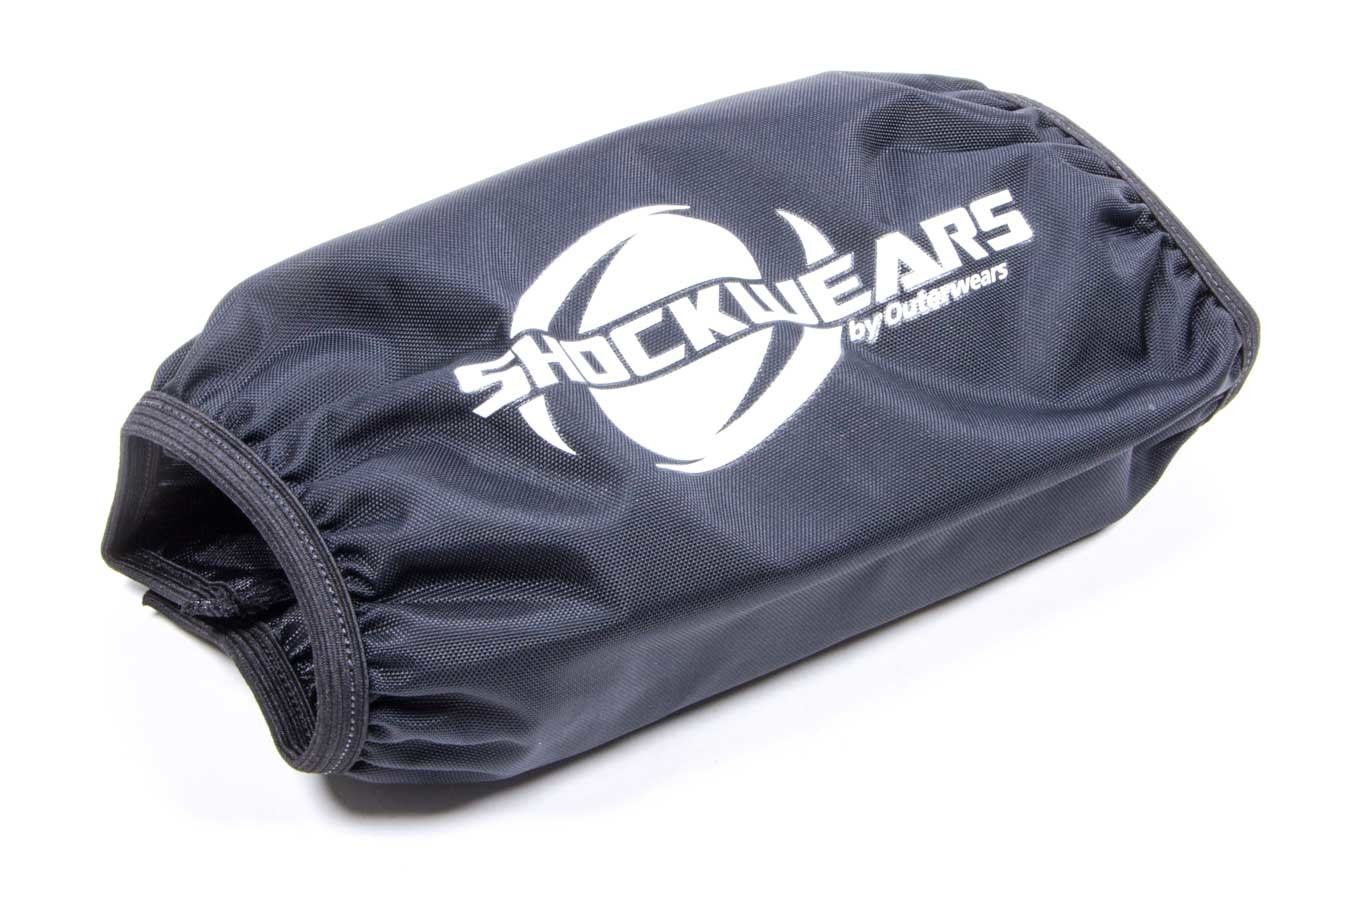 Outerwears Pull Bar Cover 5in x 7in Black